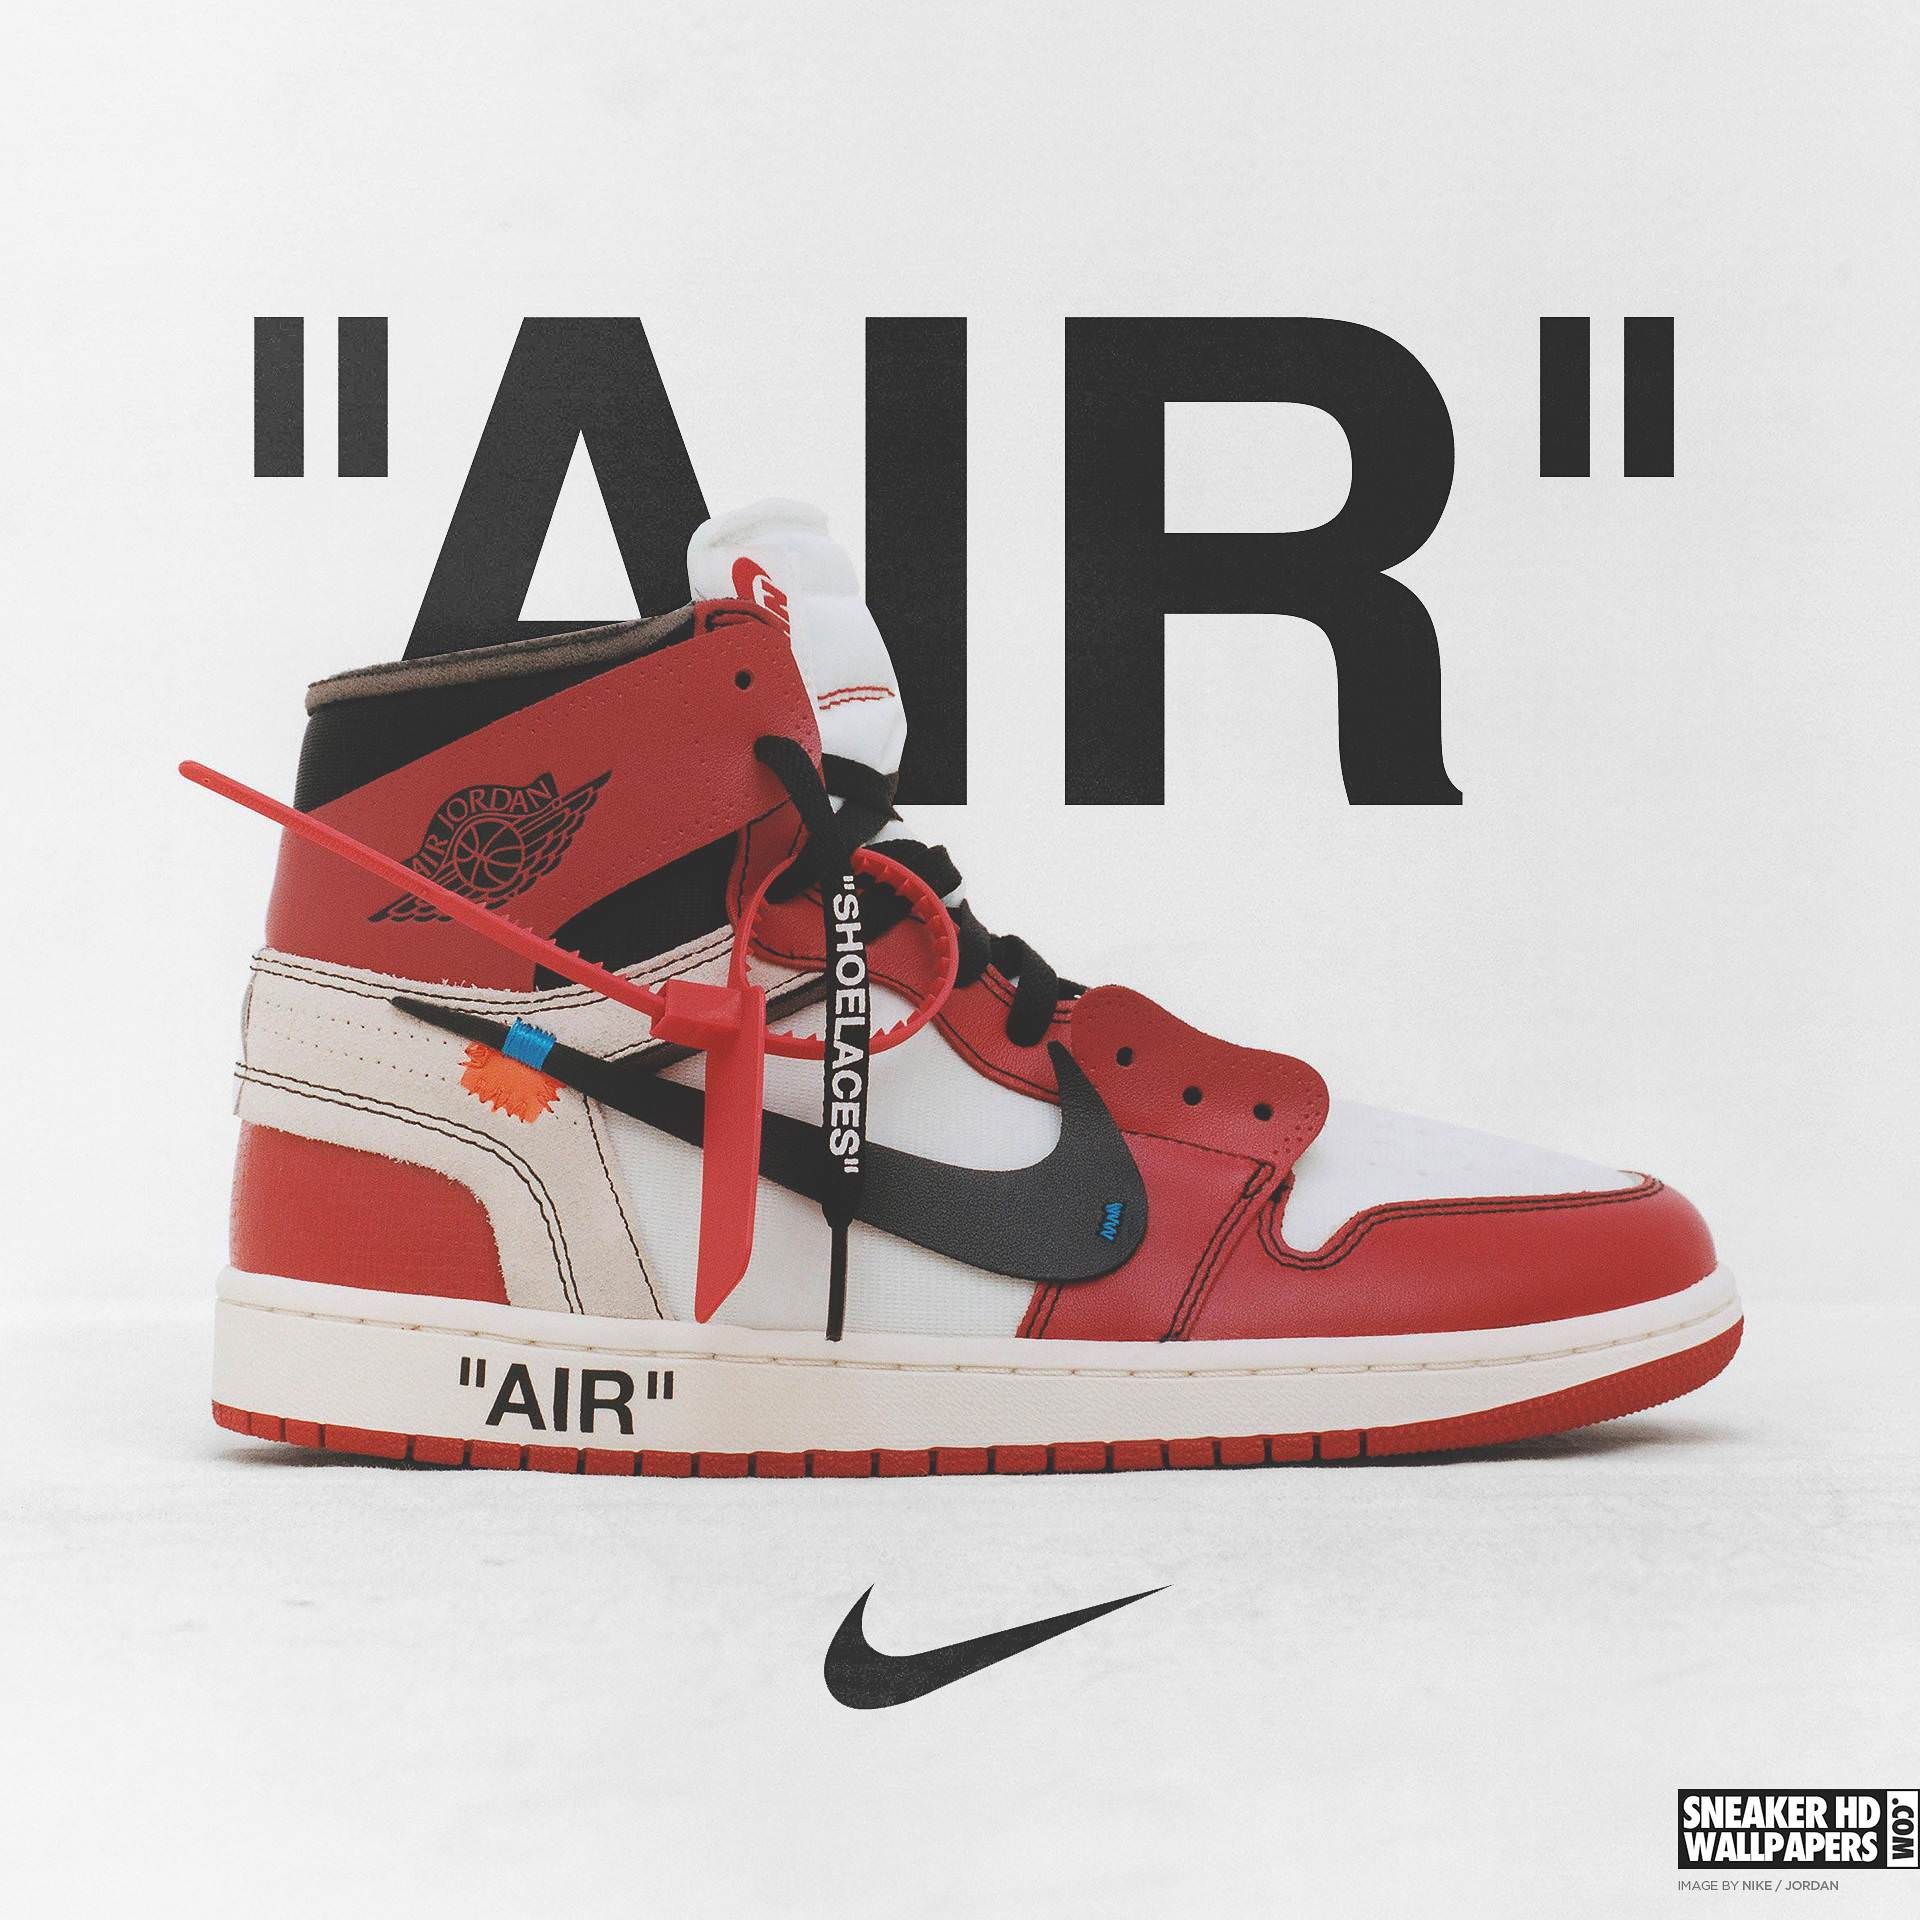 Sneaker Wallpaper: 6 Best Free Shoes Off White Wallpapers